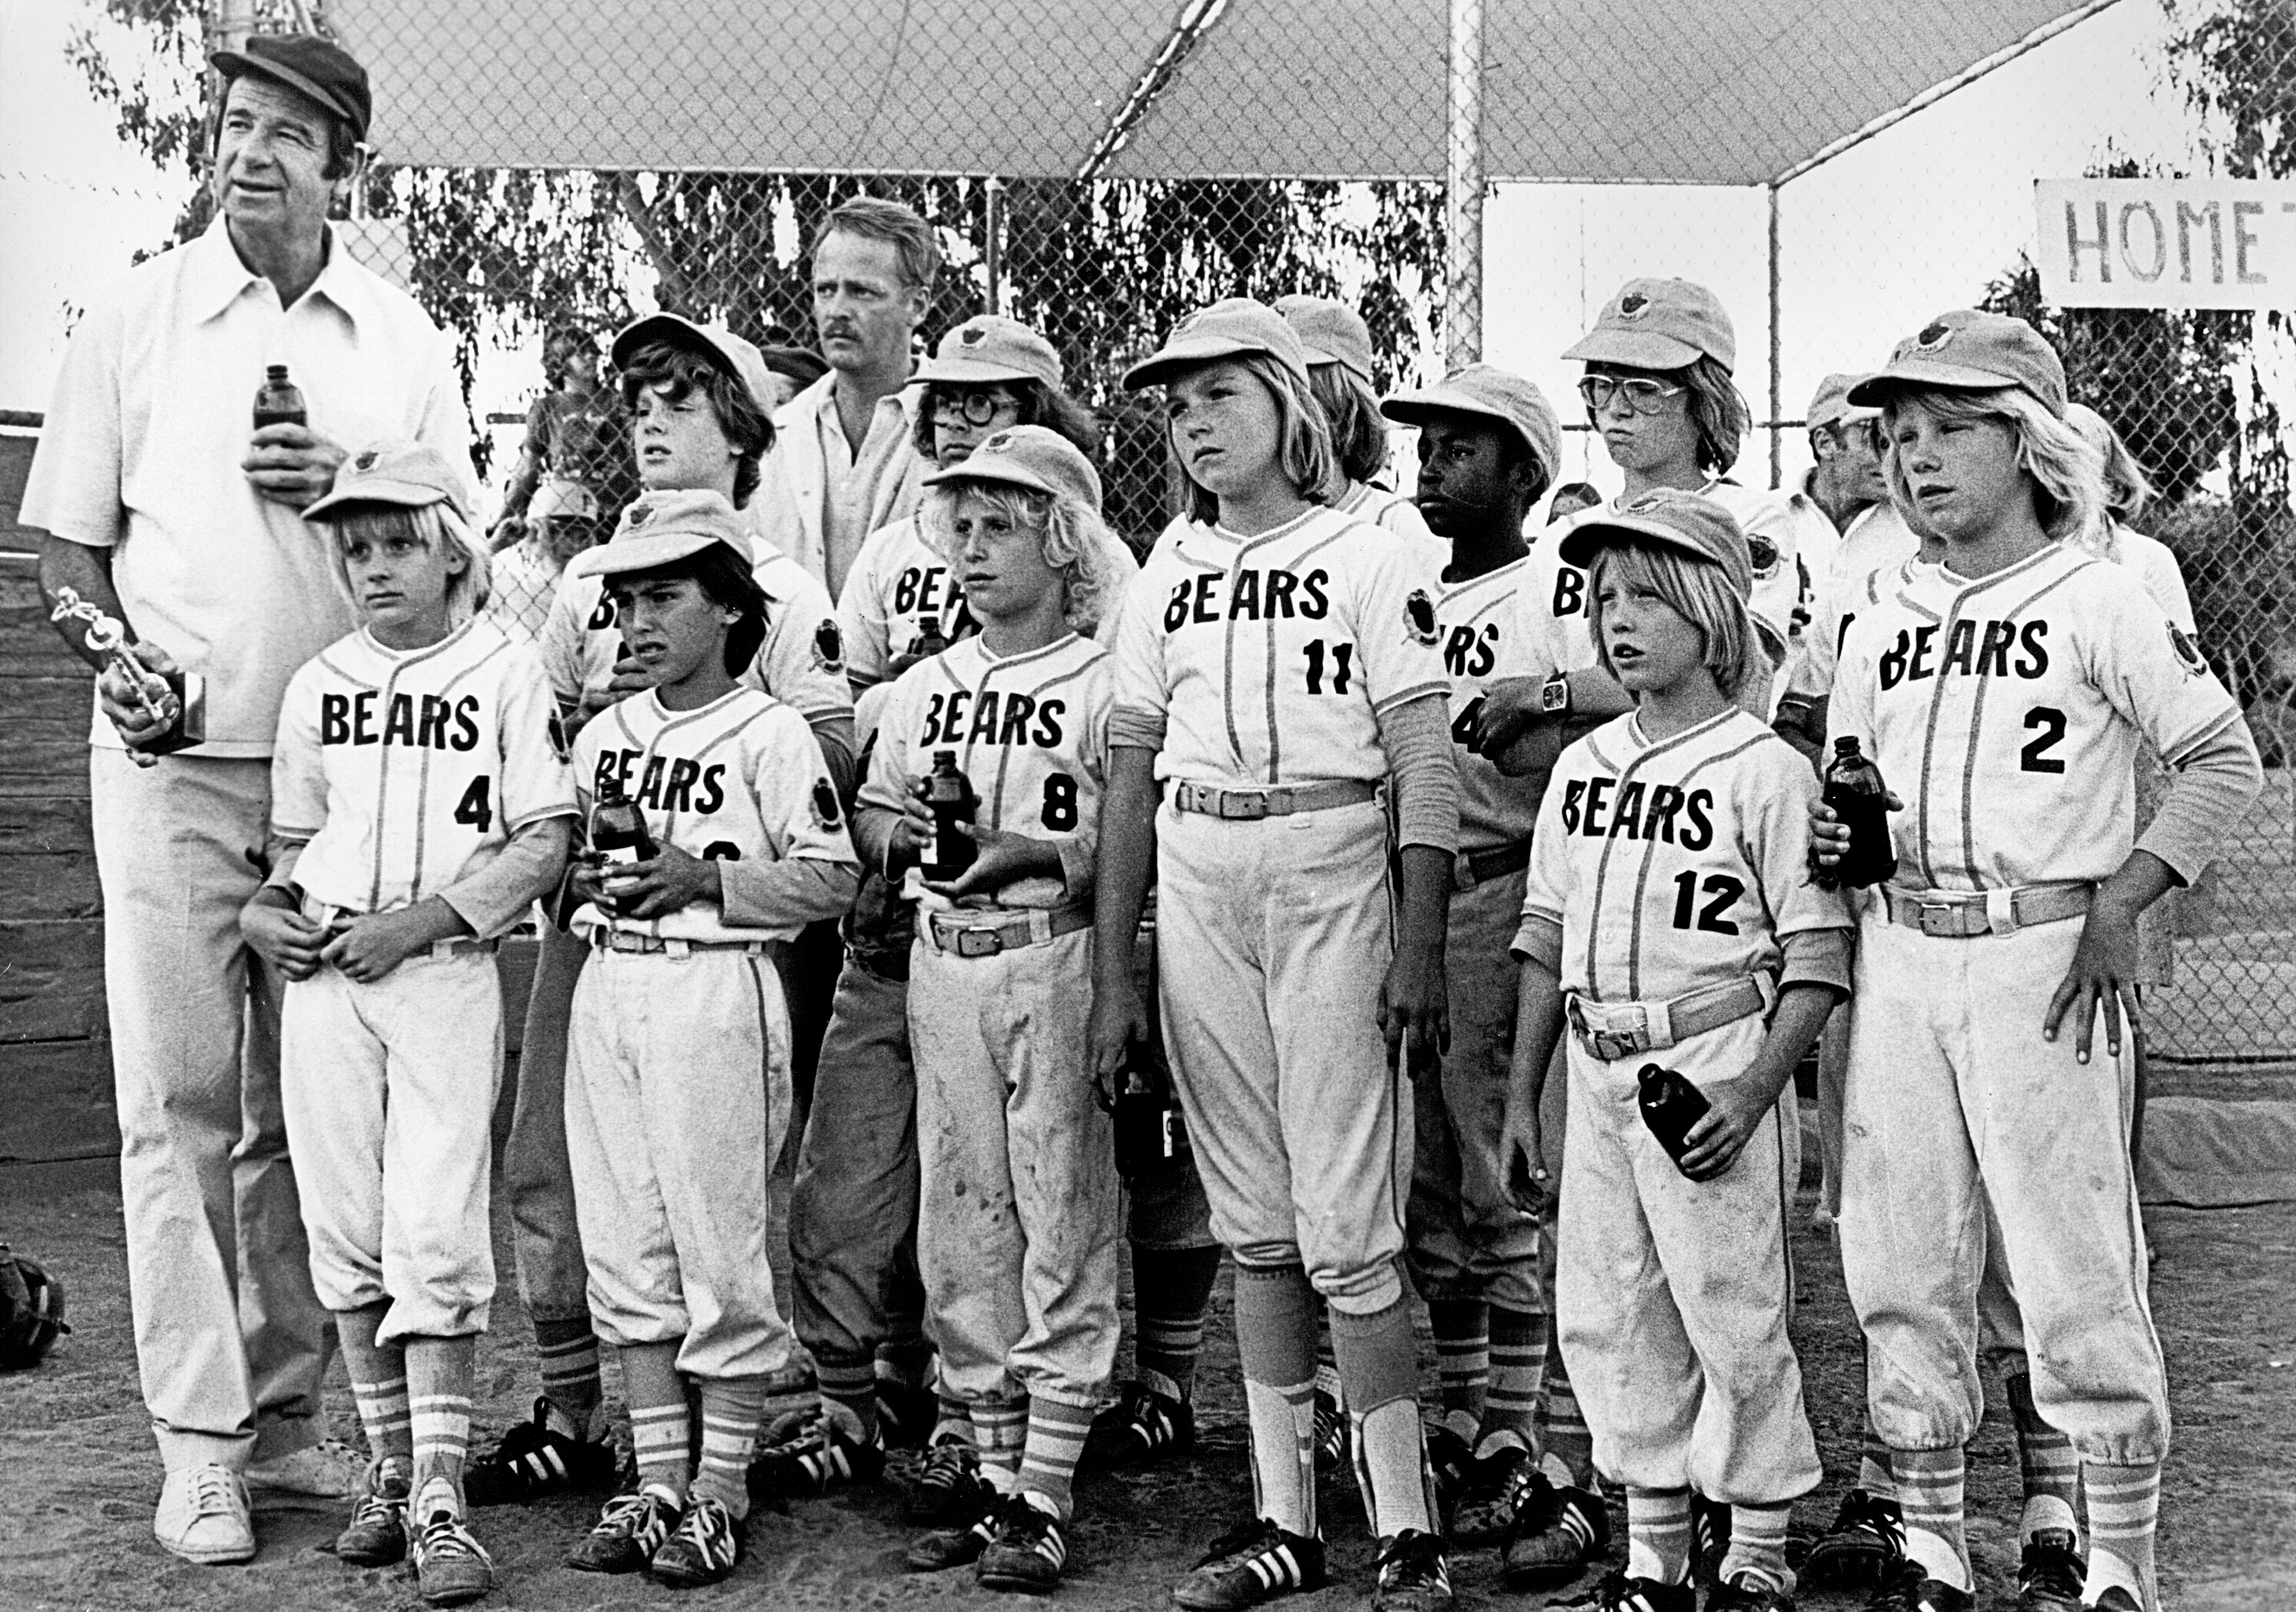 Why 'Bad News Bears' Is the Greatest Baseball Movie Ever